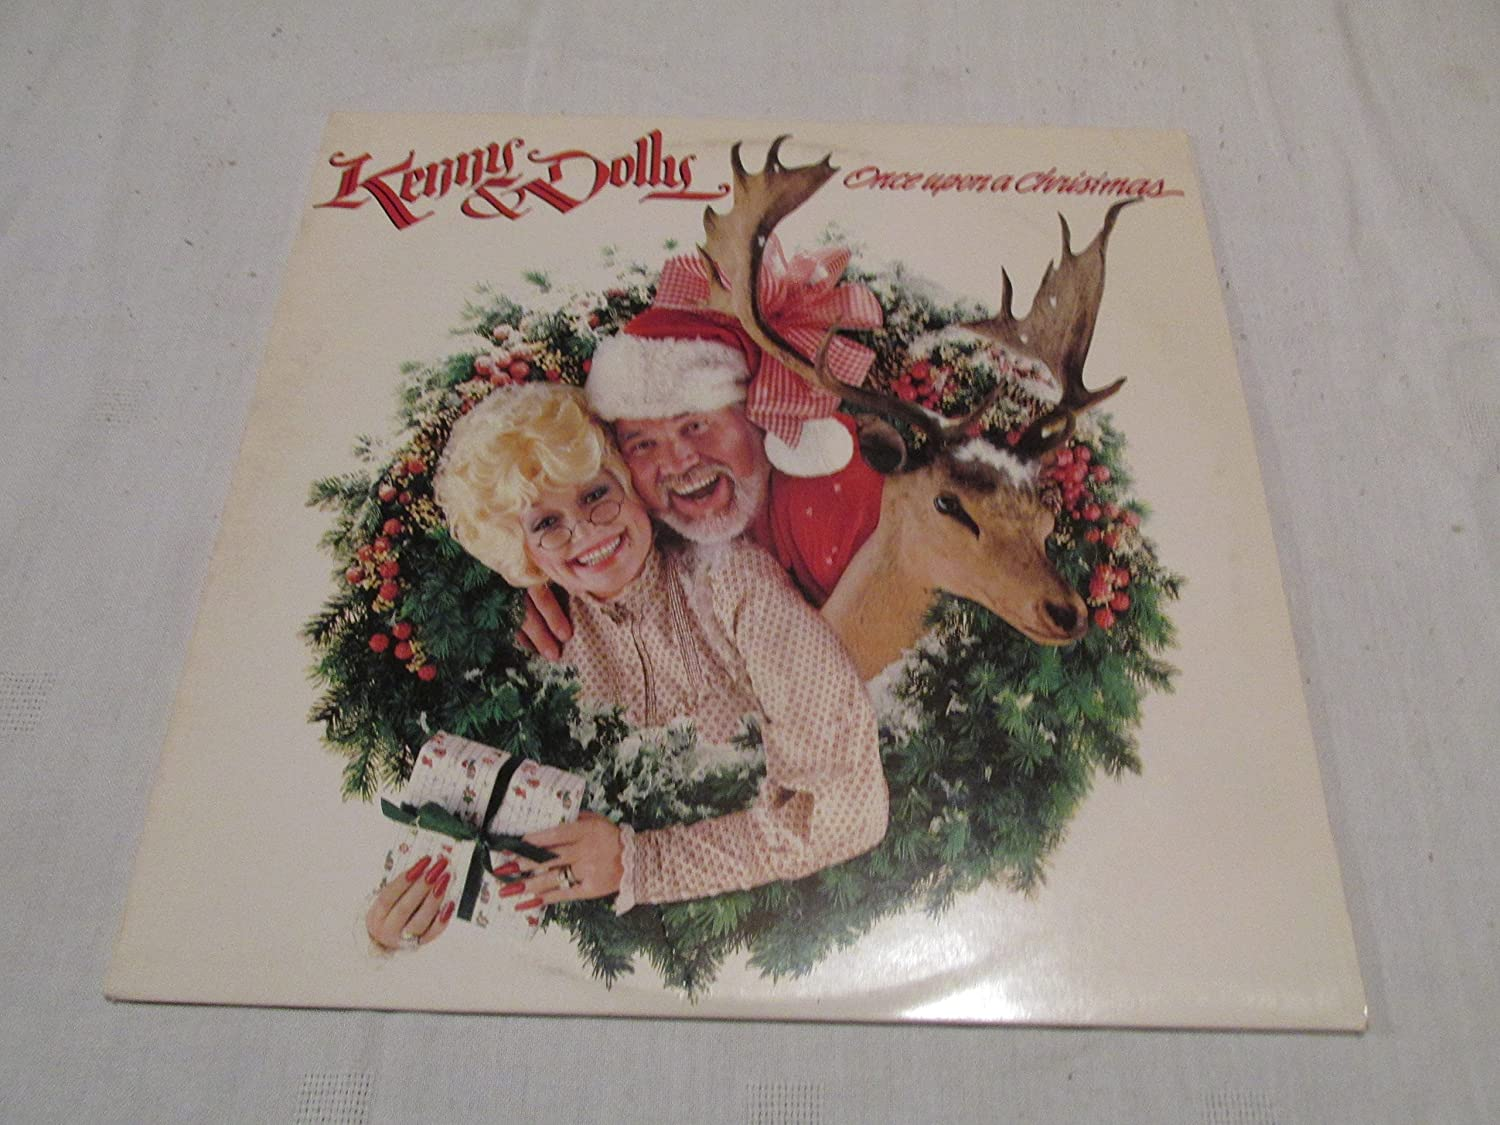 Kenny Rogers, Dolly Parton - Kenny & Dolly - Once Upon a Christmas ...